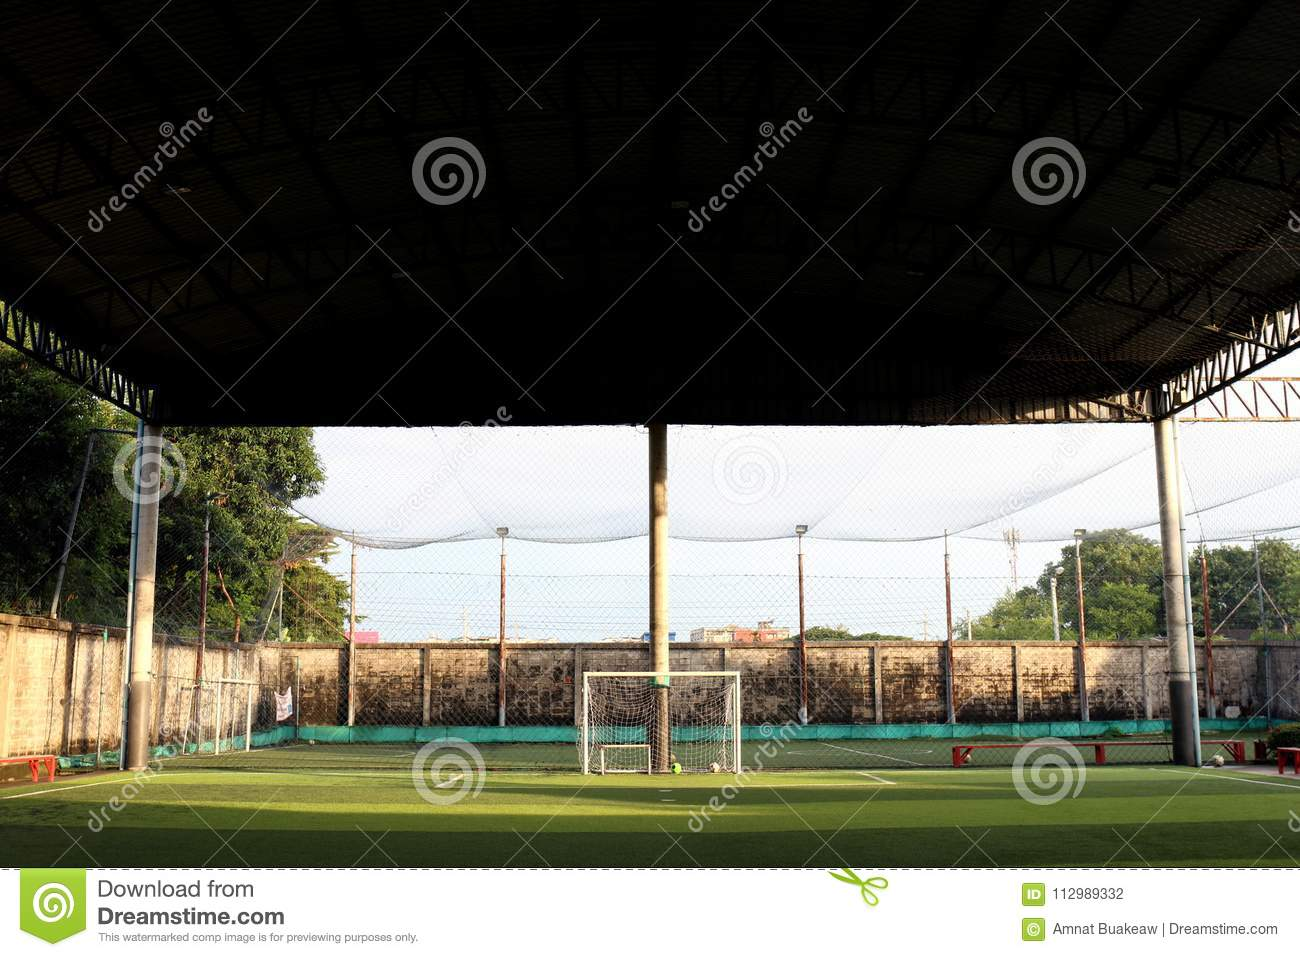 Football field Small, Futsal ball field in the gym indoor, Soccer sport field outdoor park with artificial turf